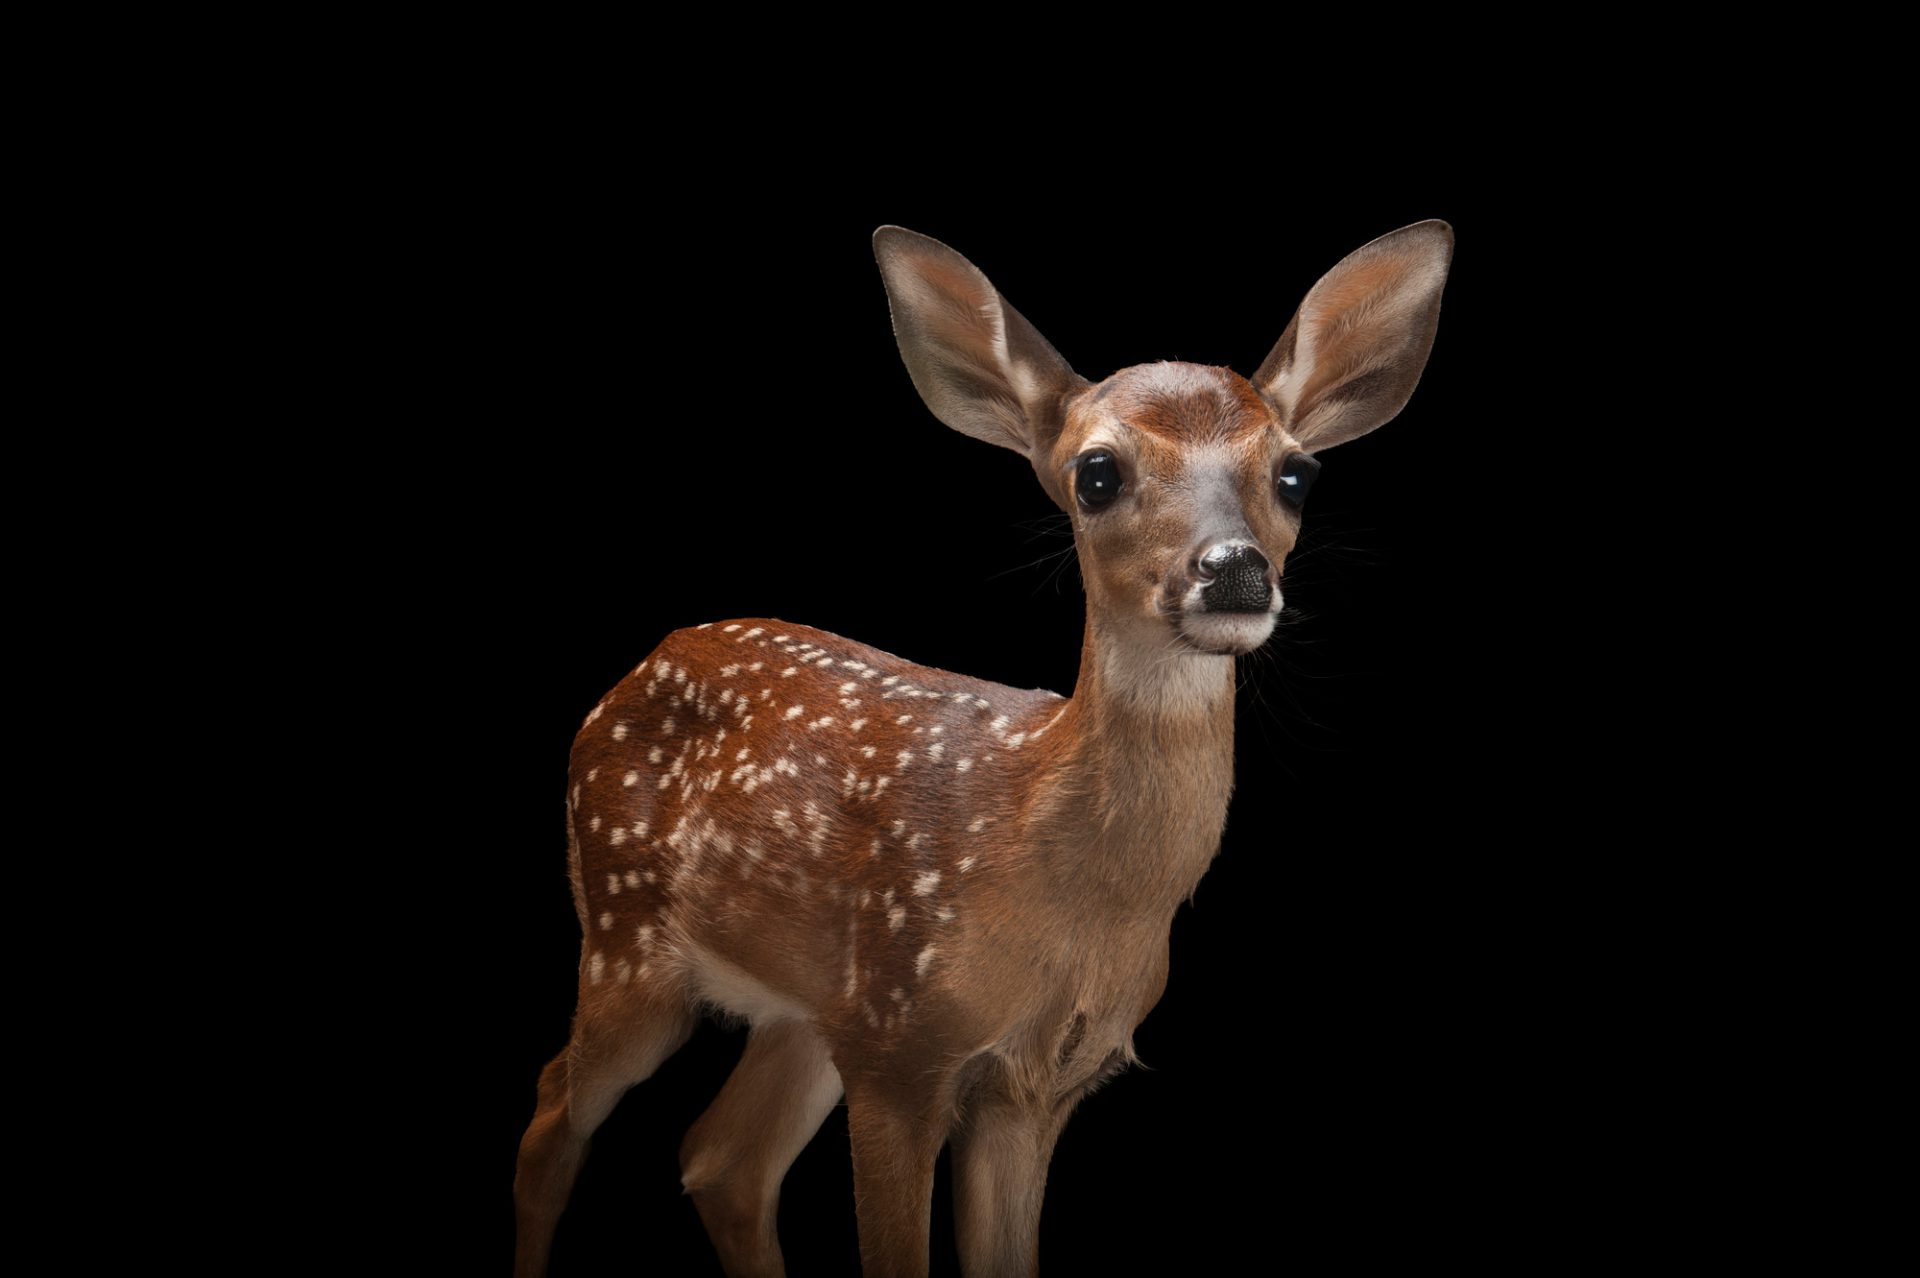 A three-week-old white-tailed deer fawn (Odocoileus virginianus) at the Gladys Porter Zoo in Brownsville, Texas.